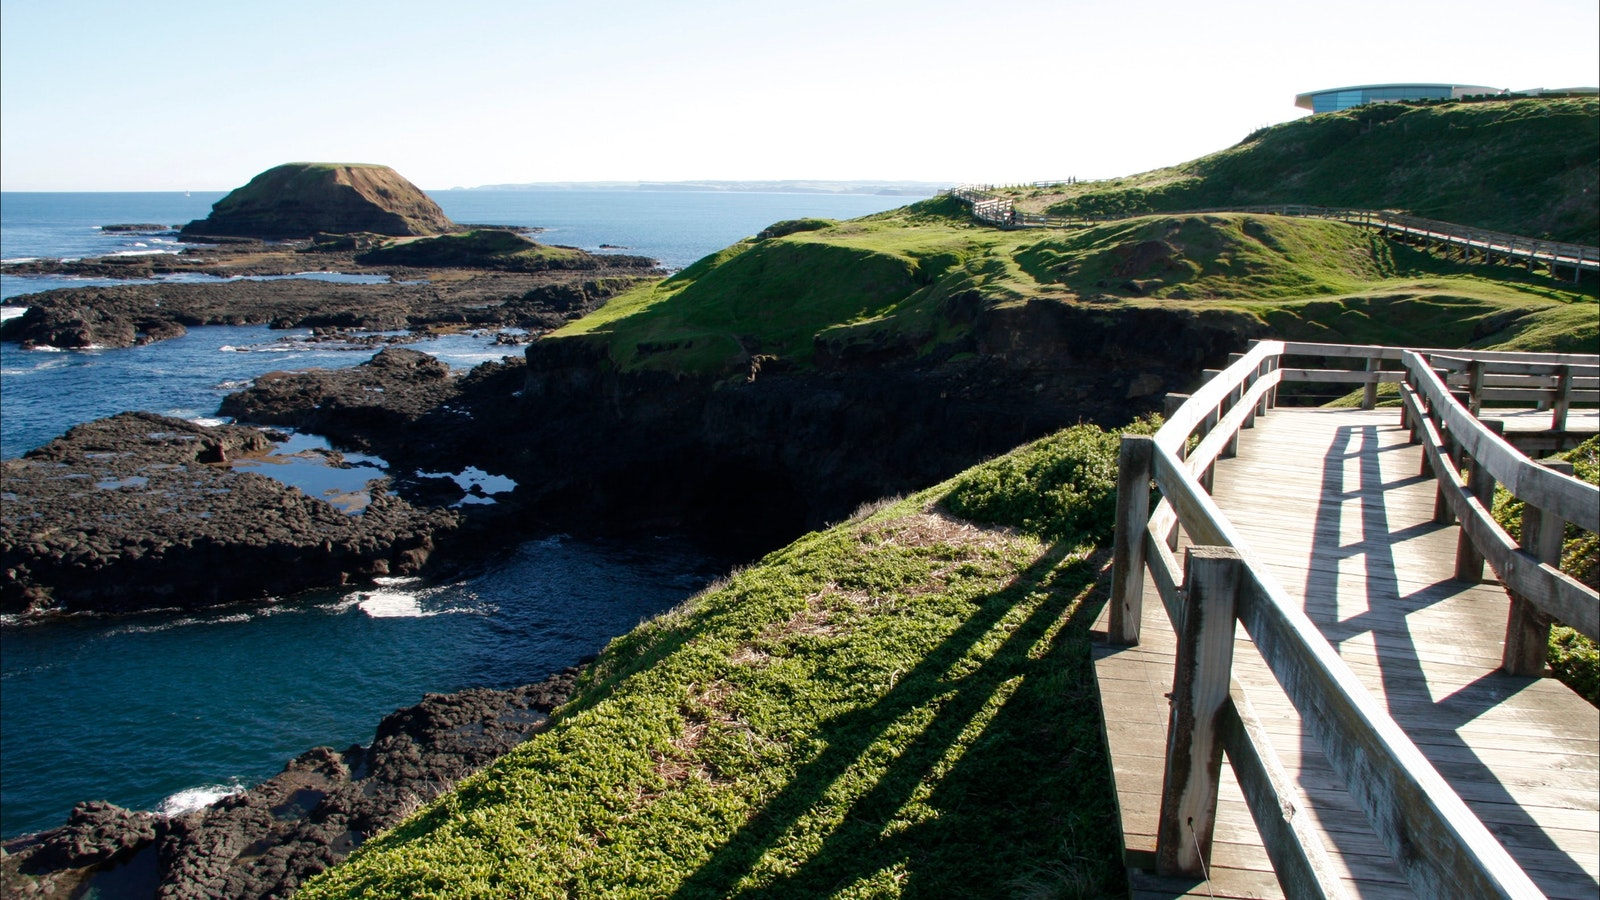 The boardwalk at the Nobbies on Phillip Island with Oceania Tours